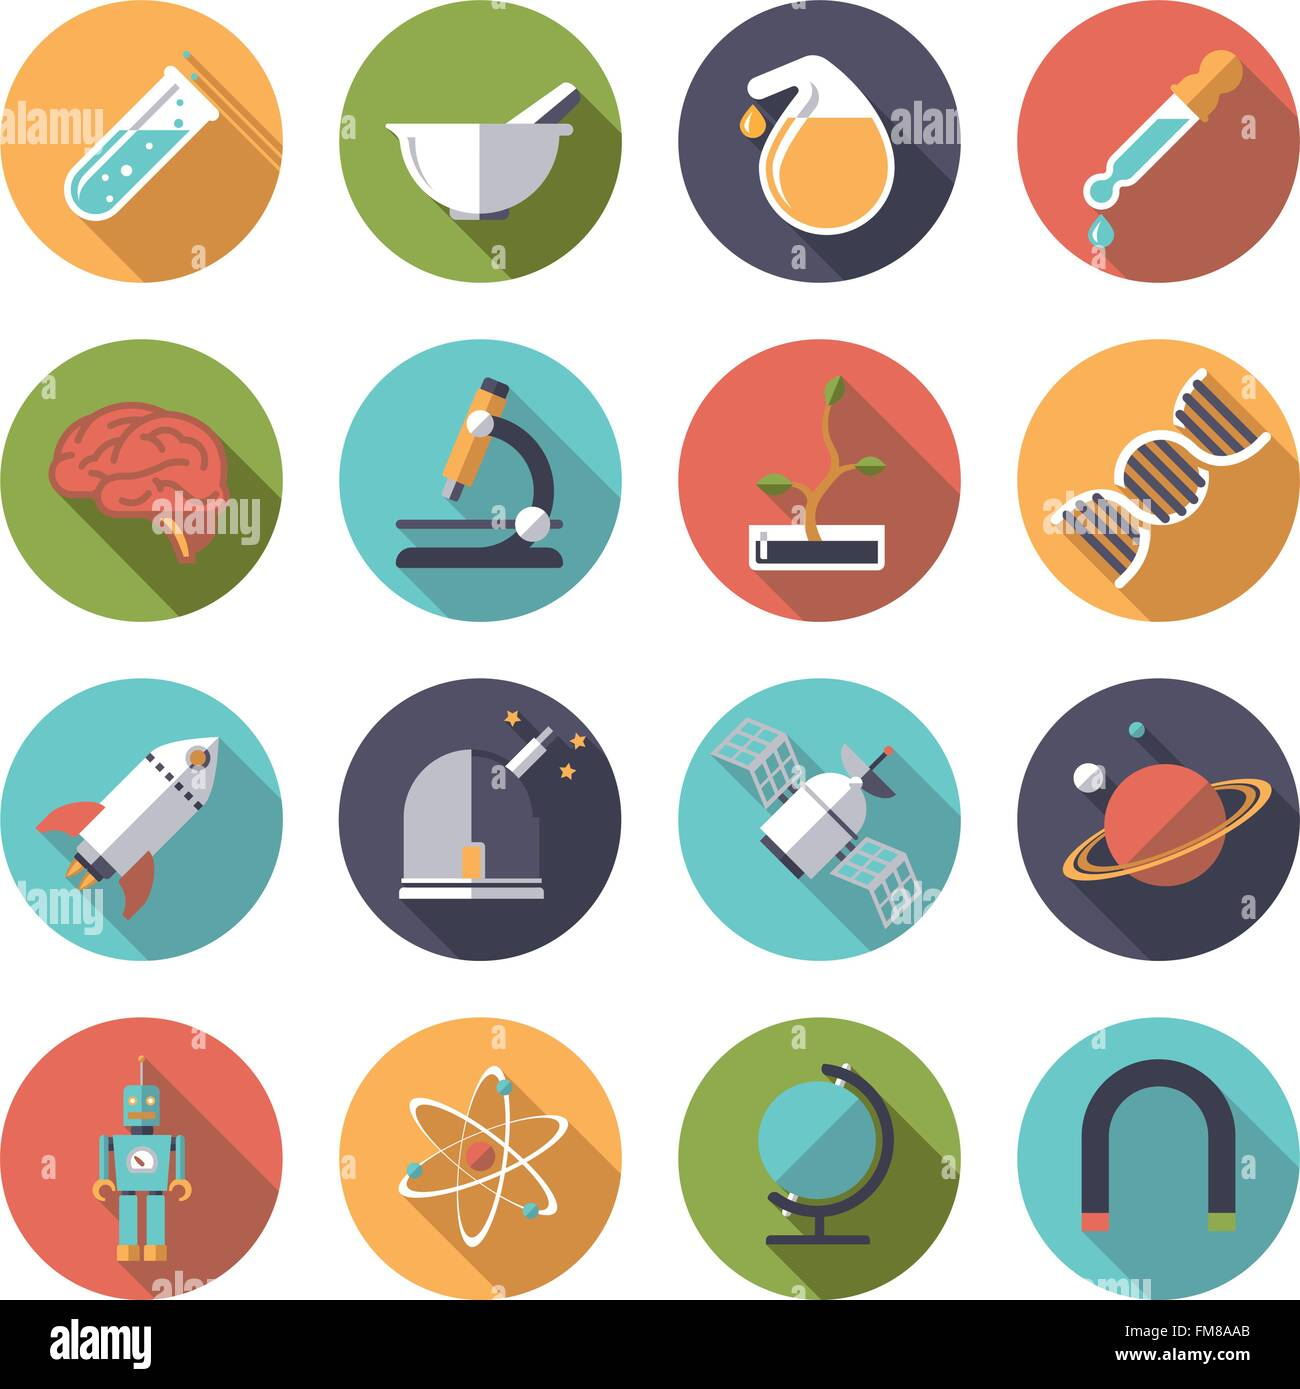 collection of 16 flat design science and research themed icons in